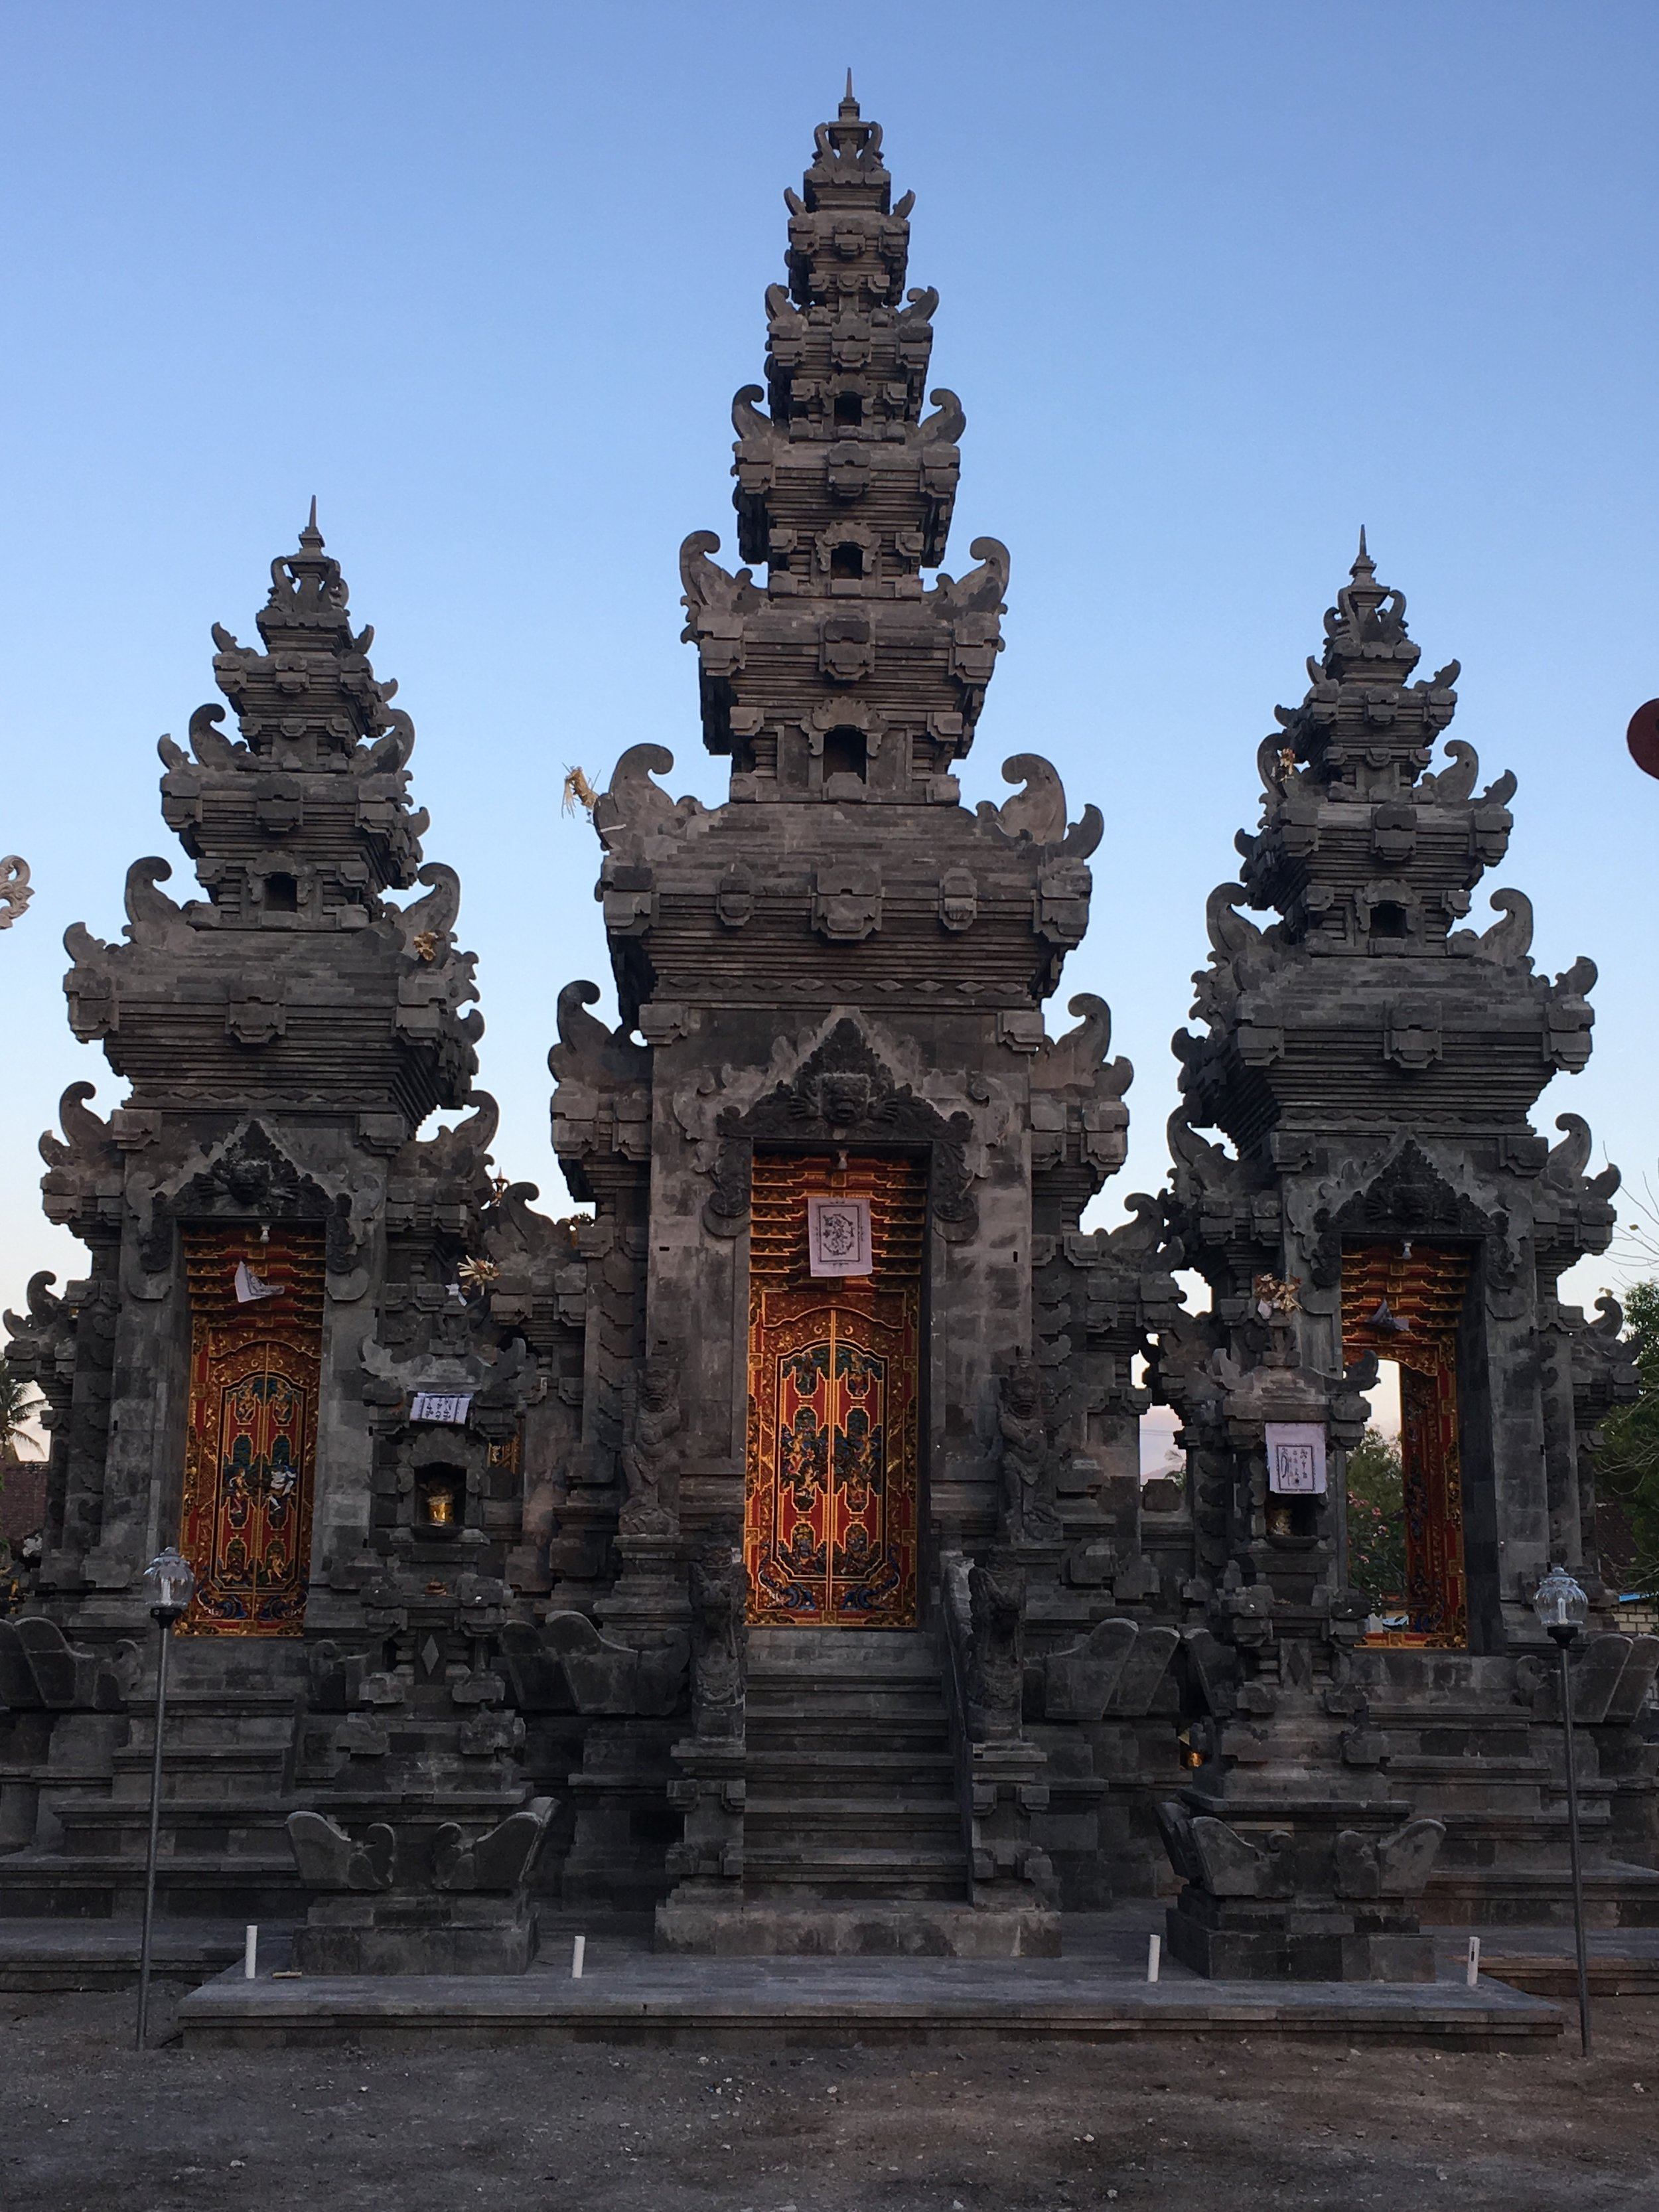 Bali May 2019 - 2 & 3 May 2019. For more information, email noel@boutiquefitnesstalks.com